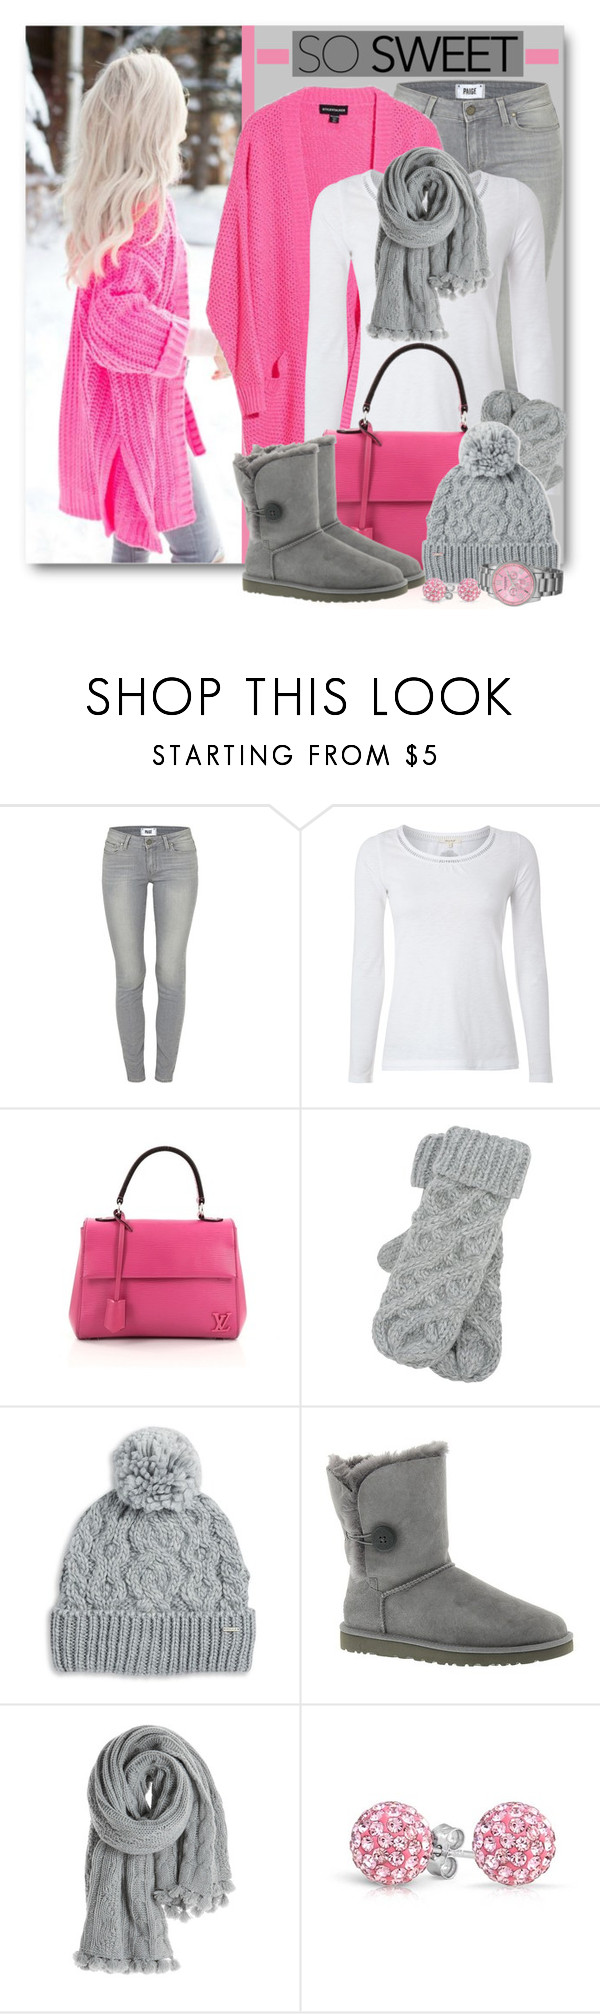 """Hot Pink Winter"" by brendariley-1 ❤ liked on Polyvore featuring Paige Denim, White Stuff, Louis Vuitton, M&Co, Rella, UGG Australia, Calypso St. Barth, Bling Jewelry and Akribos XXIV"